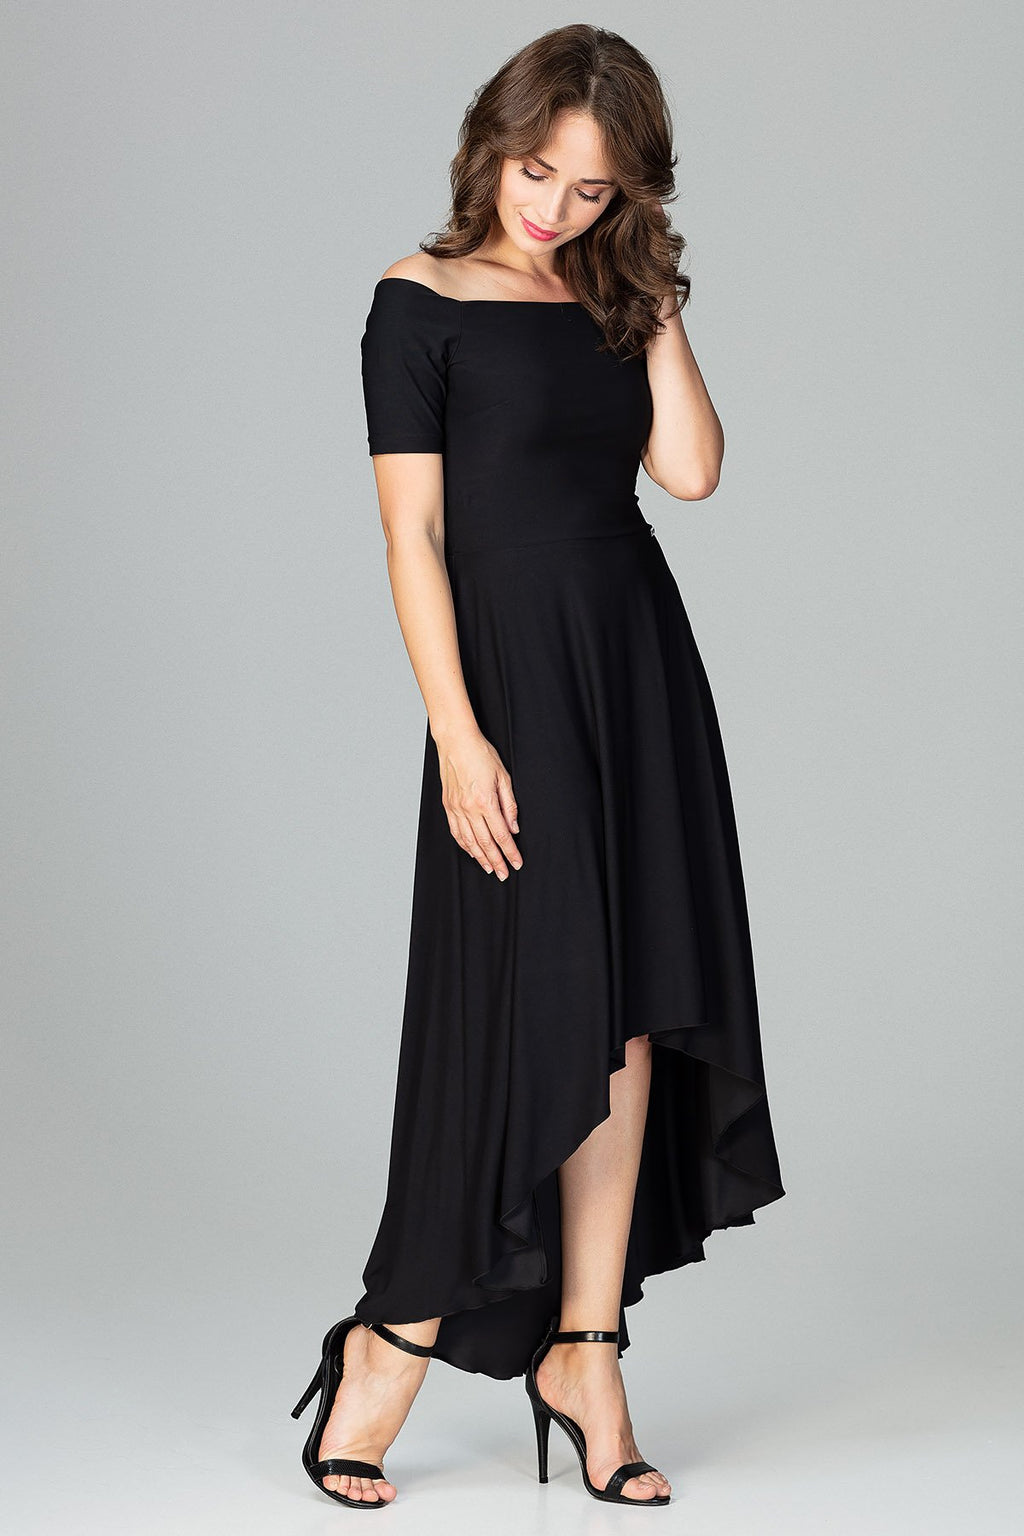 Black Asymmetric Maxi Dress - So Chic Boutique